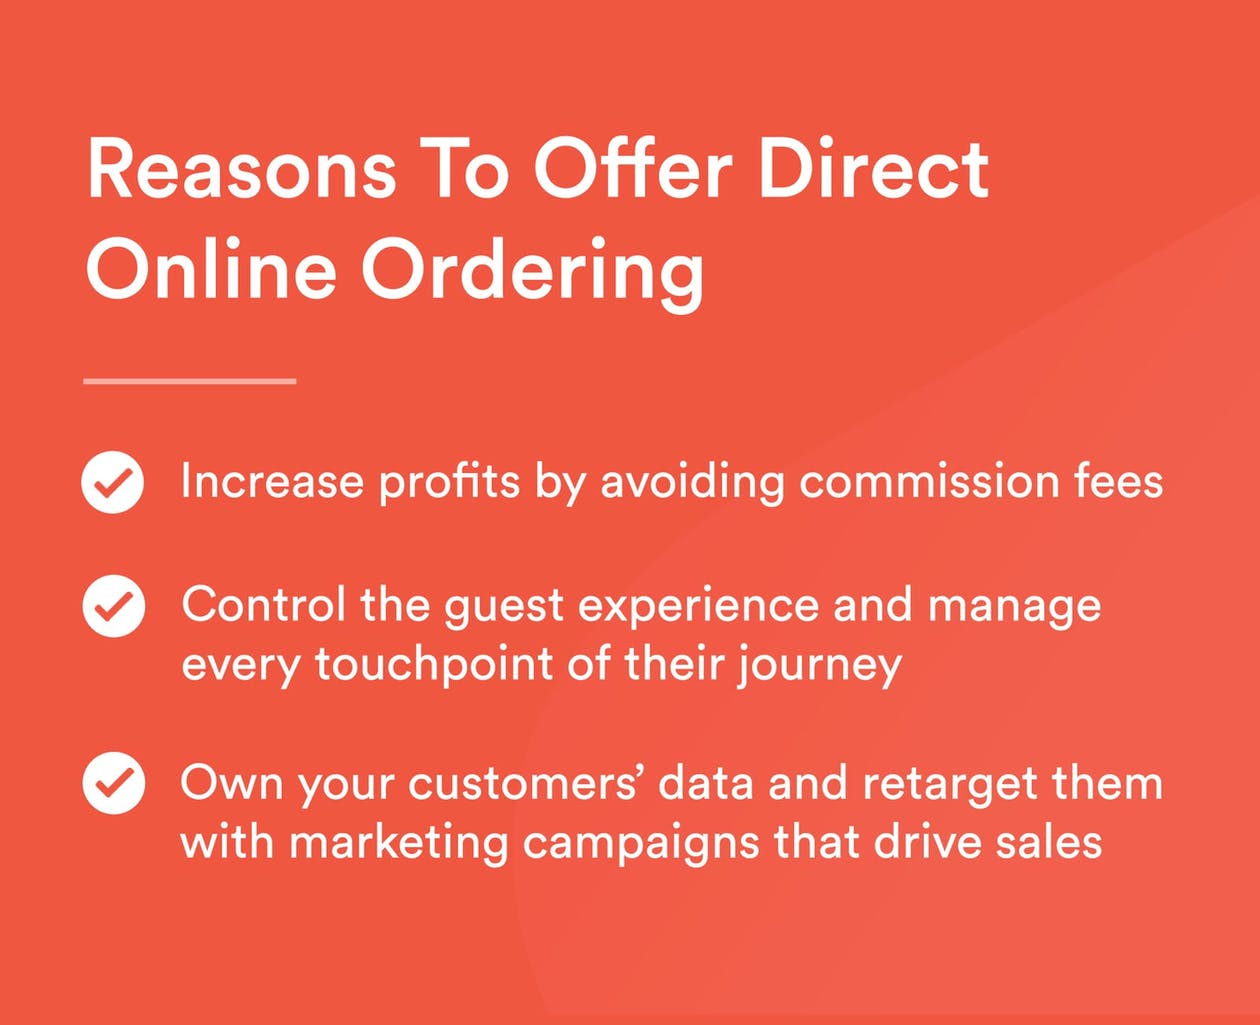 A graphic explaining the 3 reasons to offer direct online ordering.